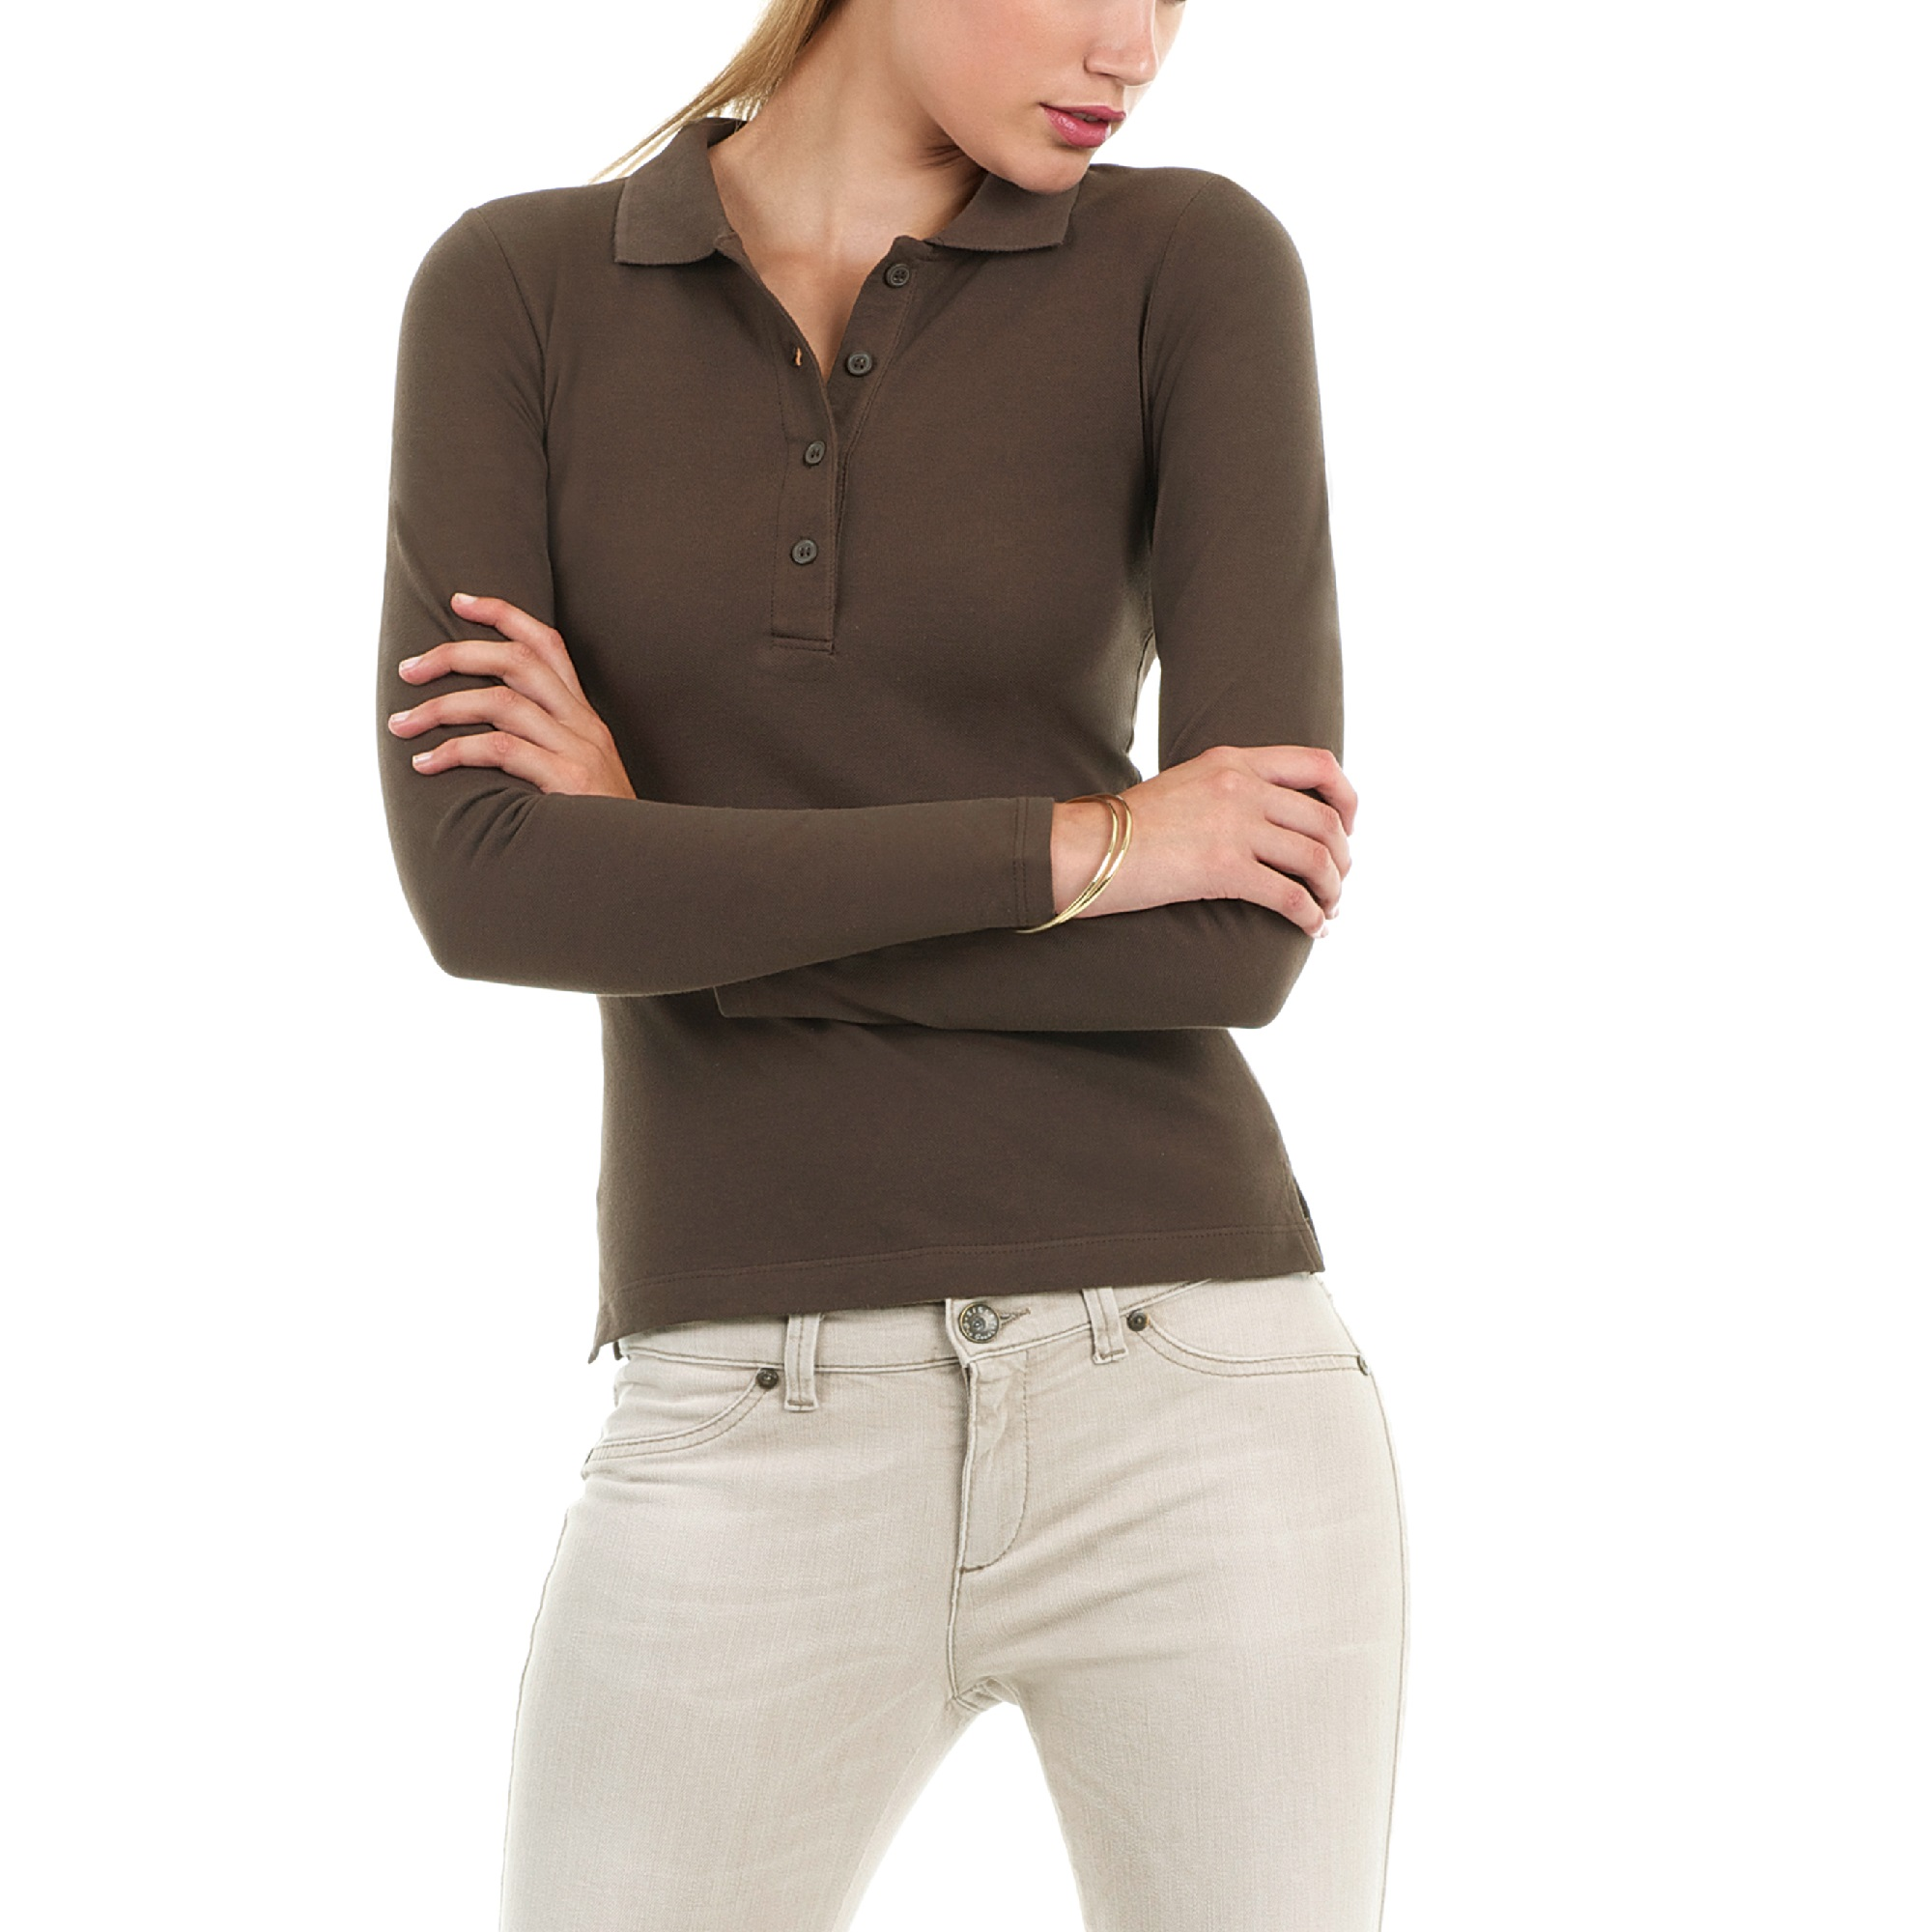 women's long sleeve knit polo shirts Shop Clothing & Shoes Online